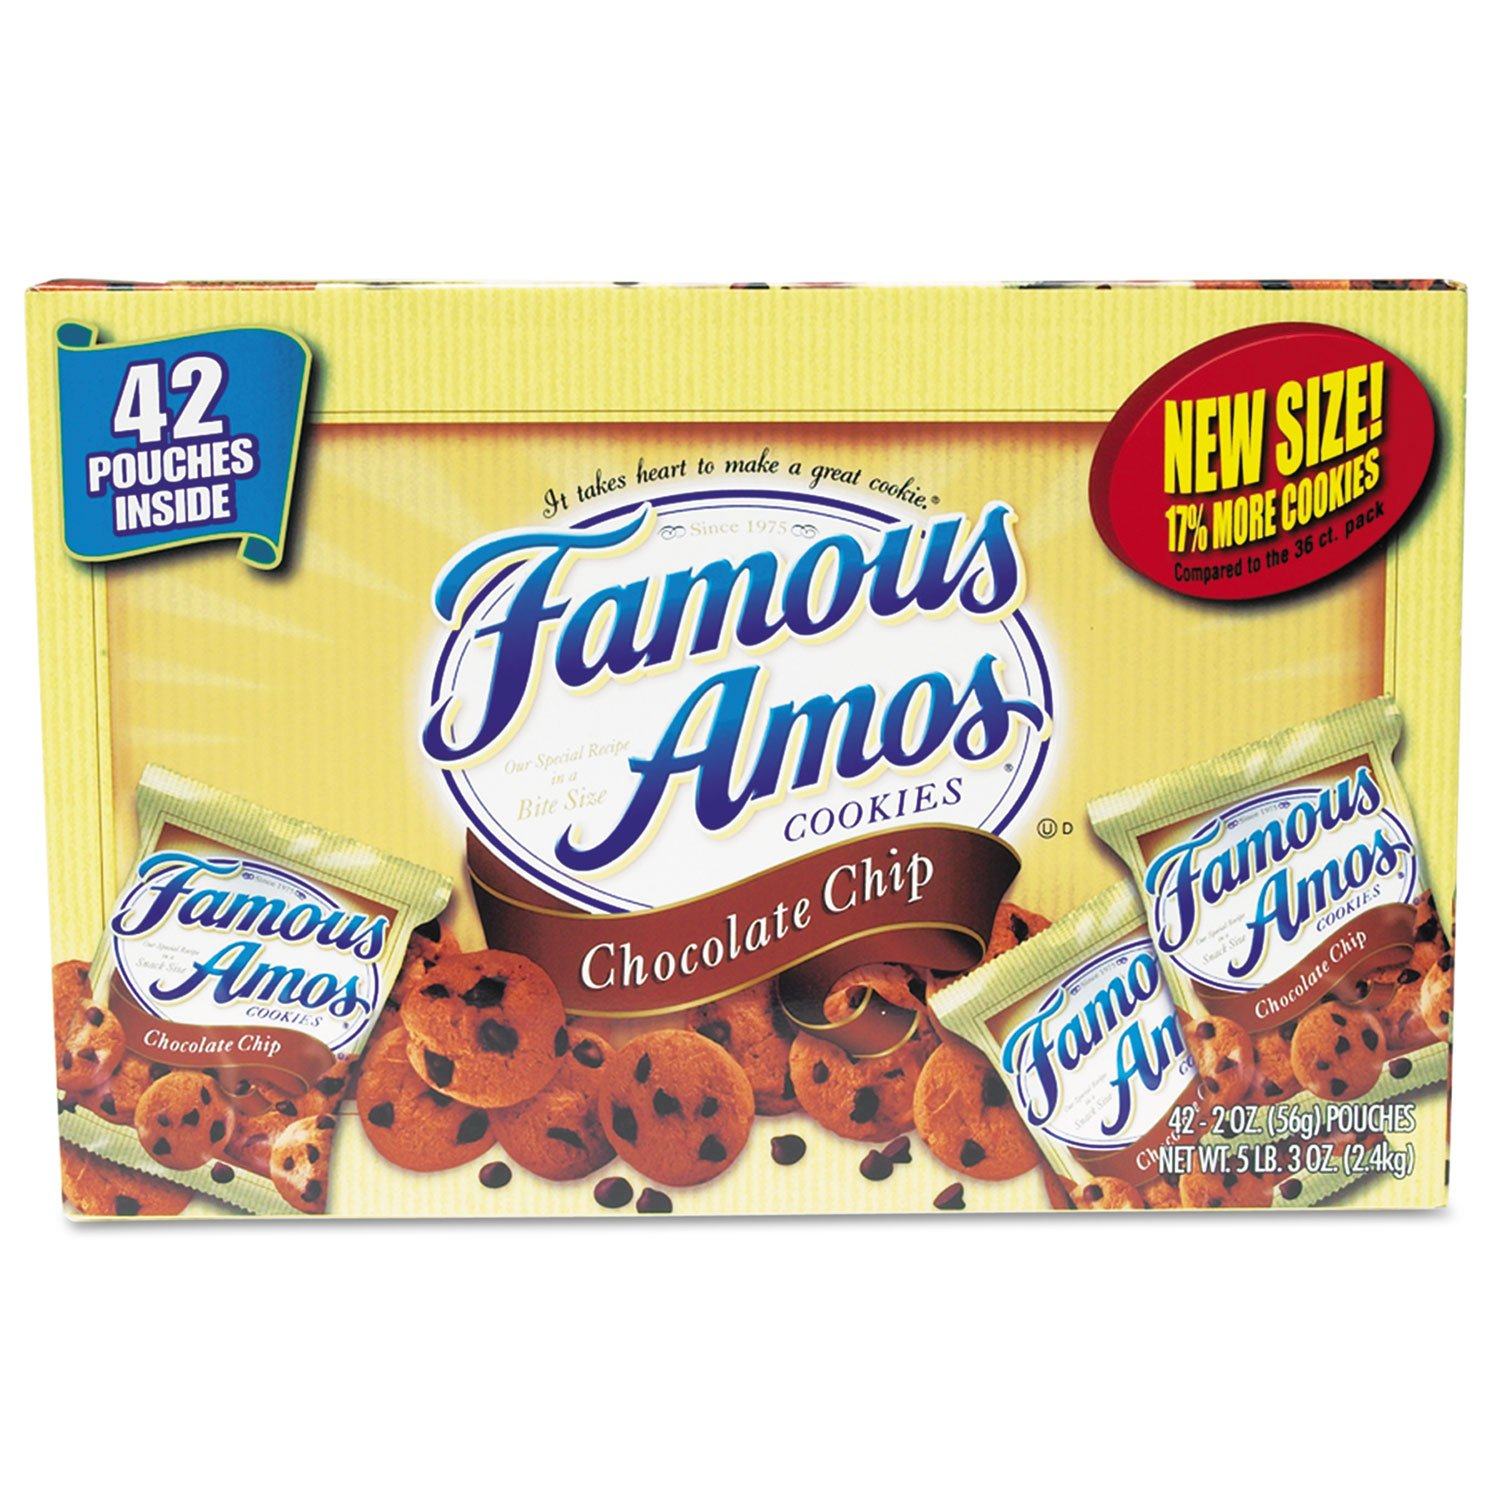 FOOD,FAMOUS AMOS COOKIES by Kellogg's®